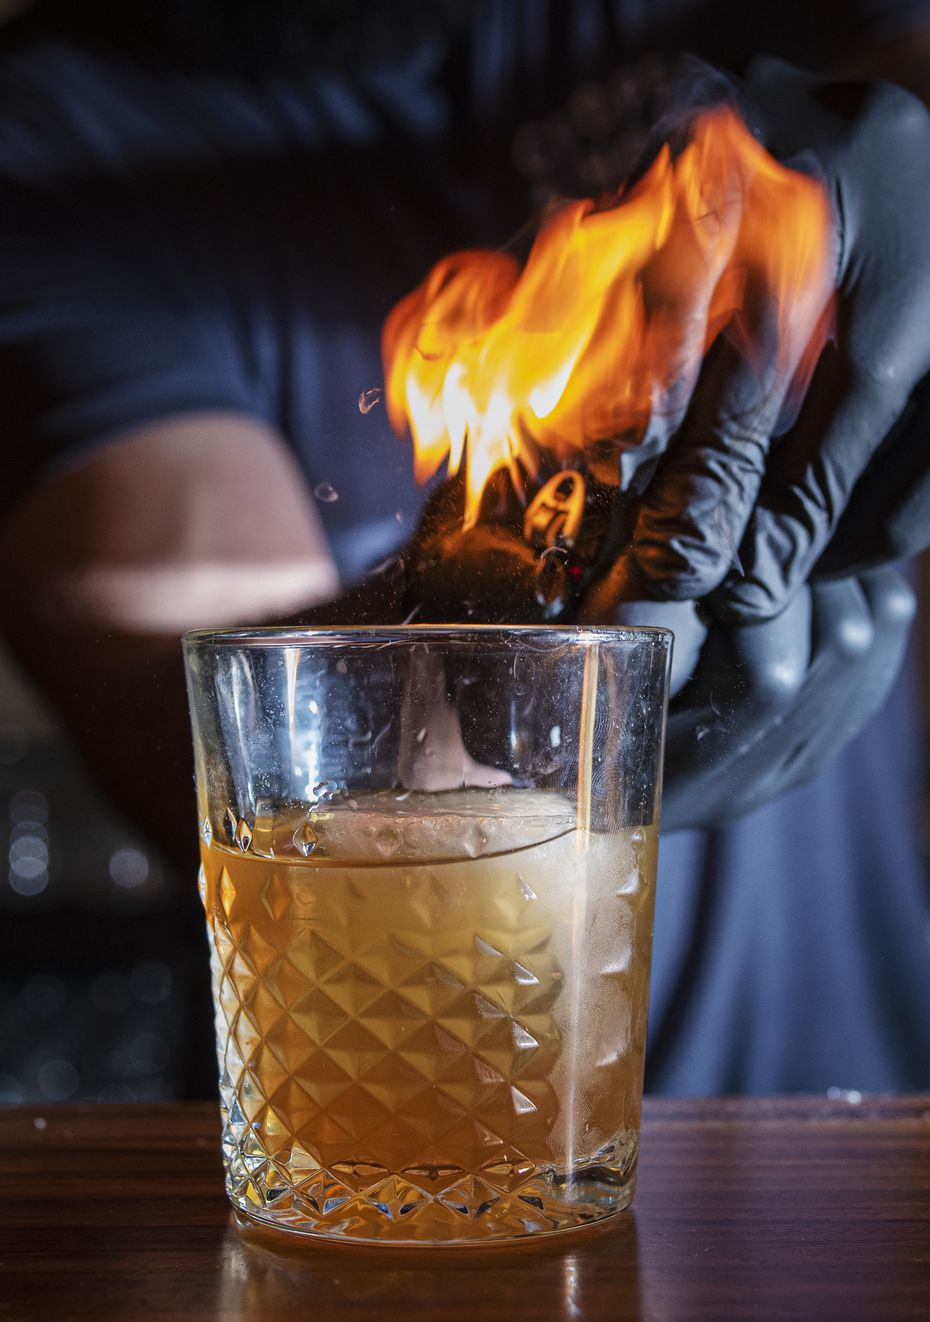 Beyond cocktails and ax throwing, there's also fire. The Lemon Honeysuckle Old Fashioned is made with Buffalo Trace Bourbon, local honey and a flamed lemon at Whiskey Hatchet in Dallas.